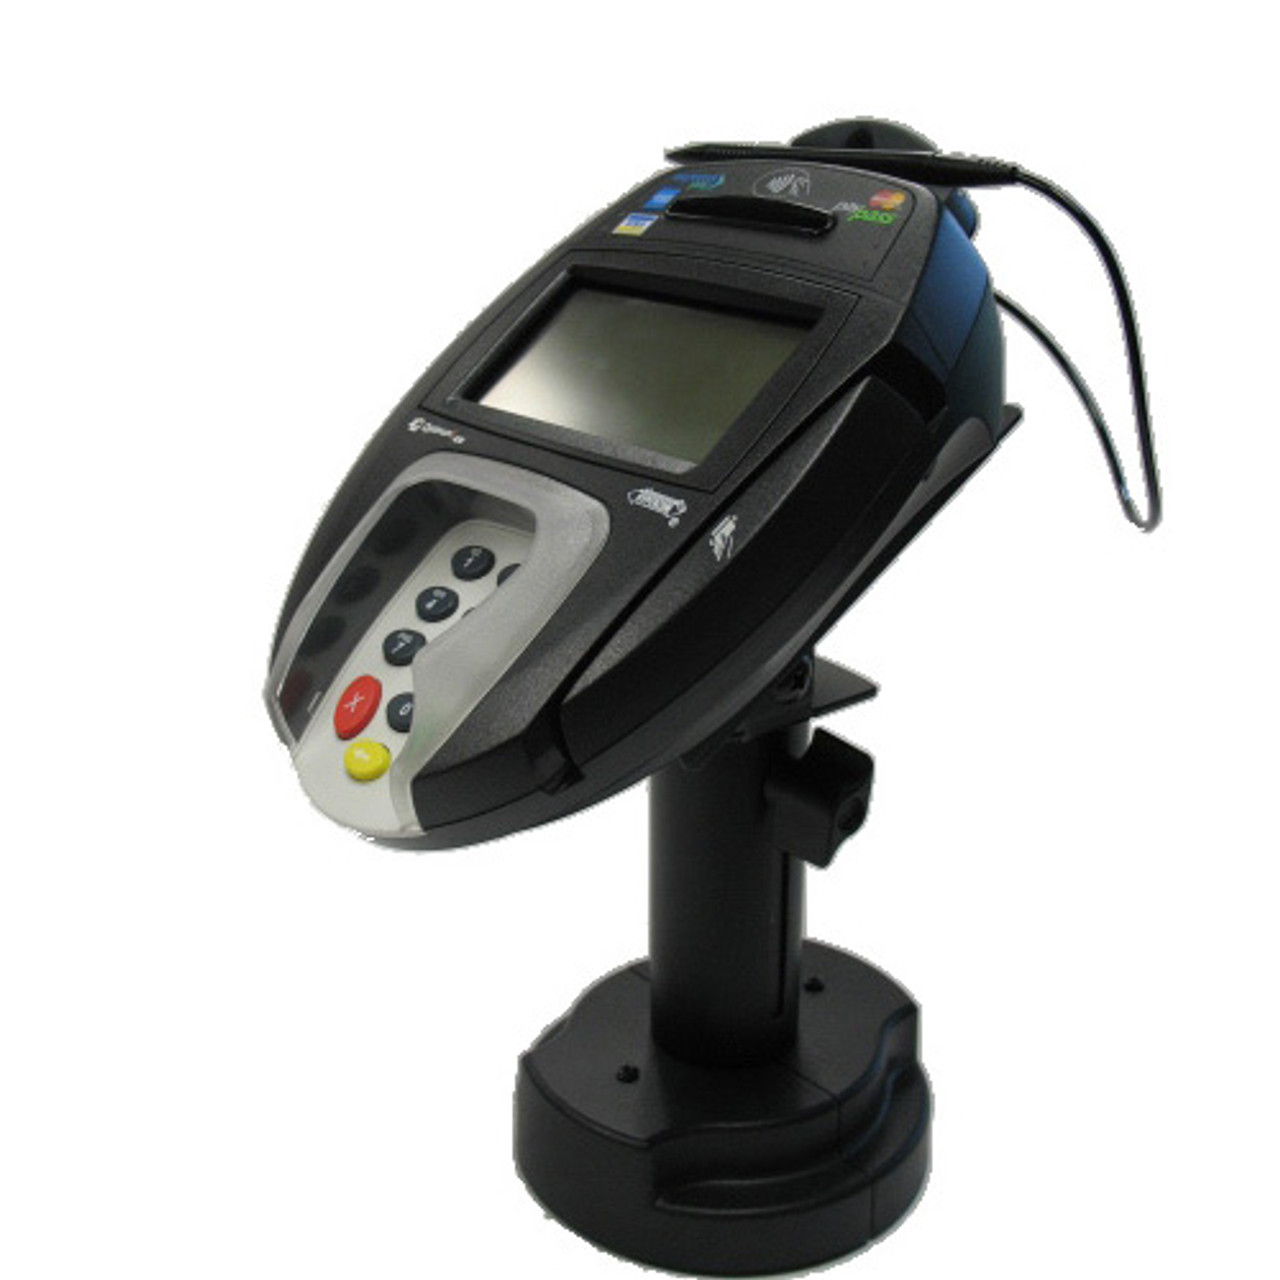 Verifone MX860 Credit Card Stand Telescoping Pedestal Quick Release by Swivel Stands